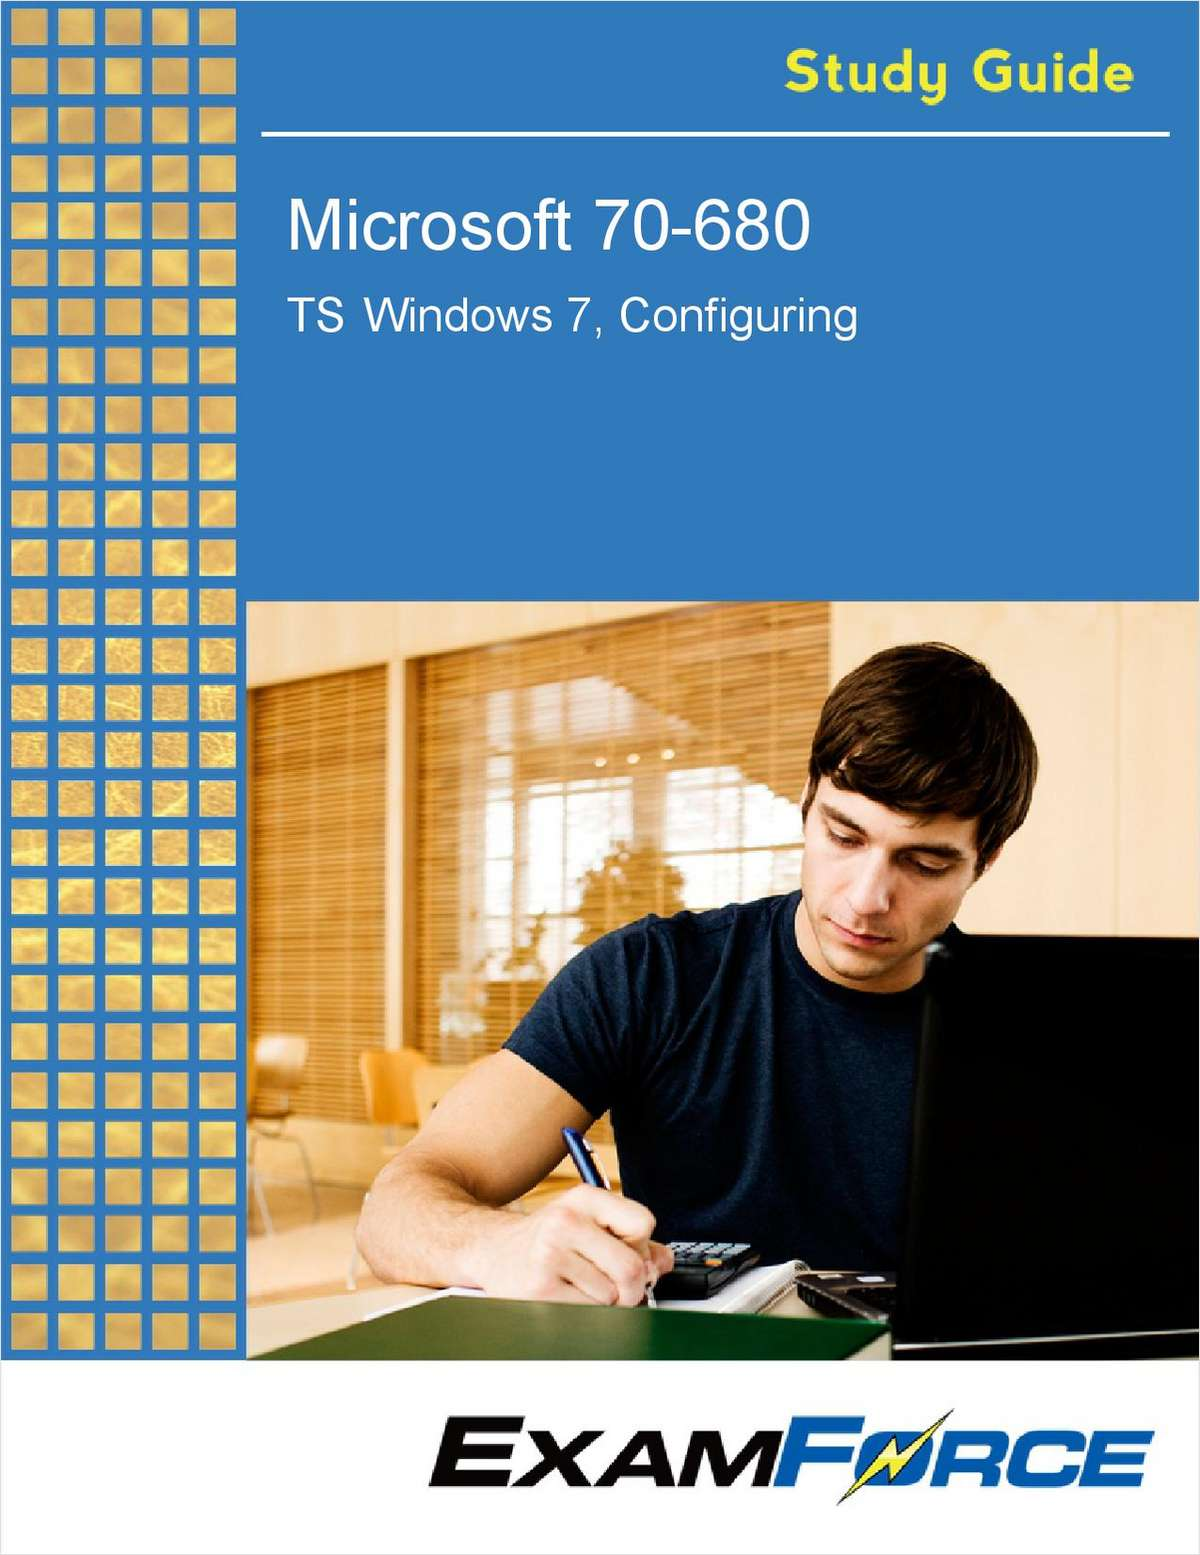 Microsoft 70-680 TS: Windows 7, Configuring (FREE Study Guide)